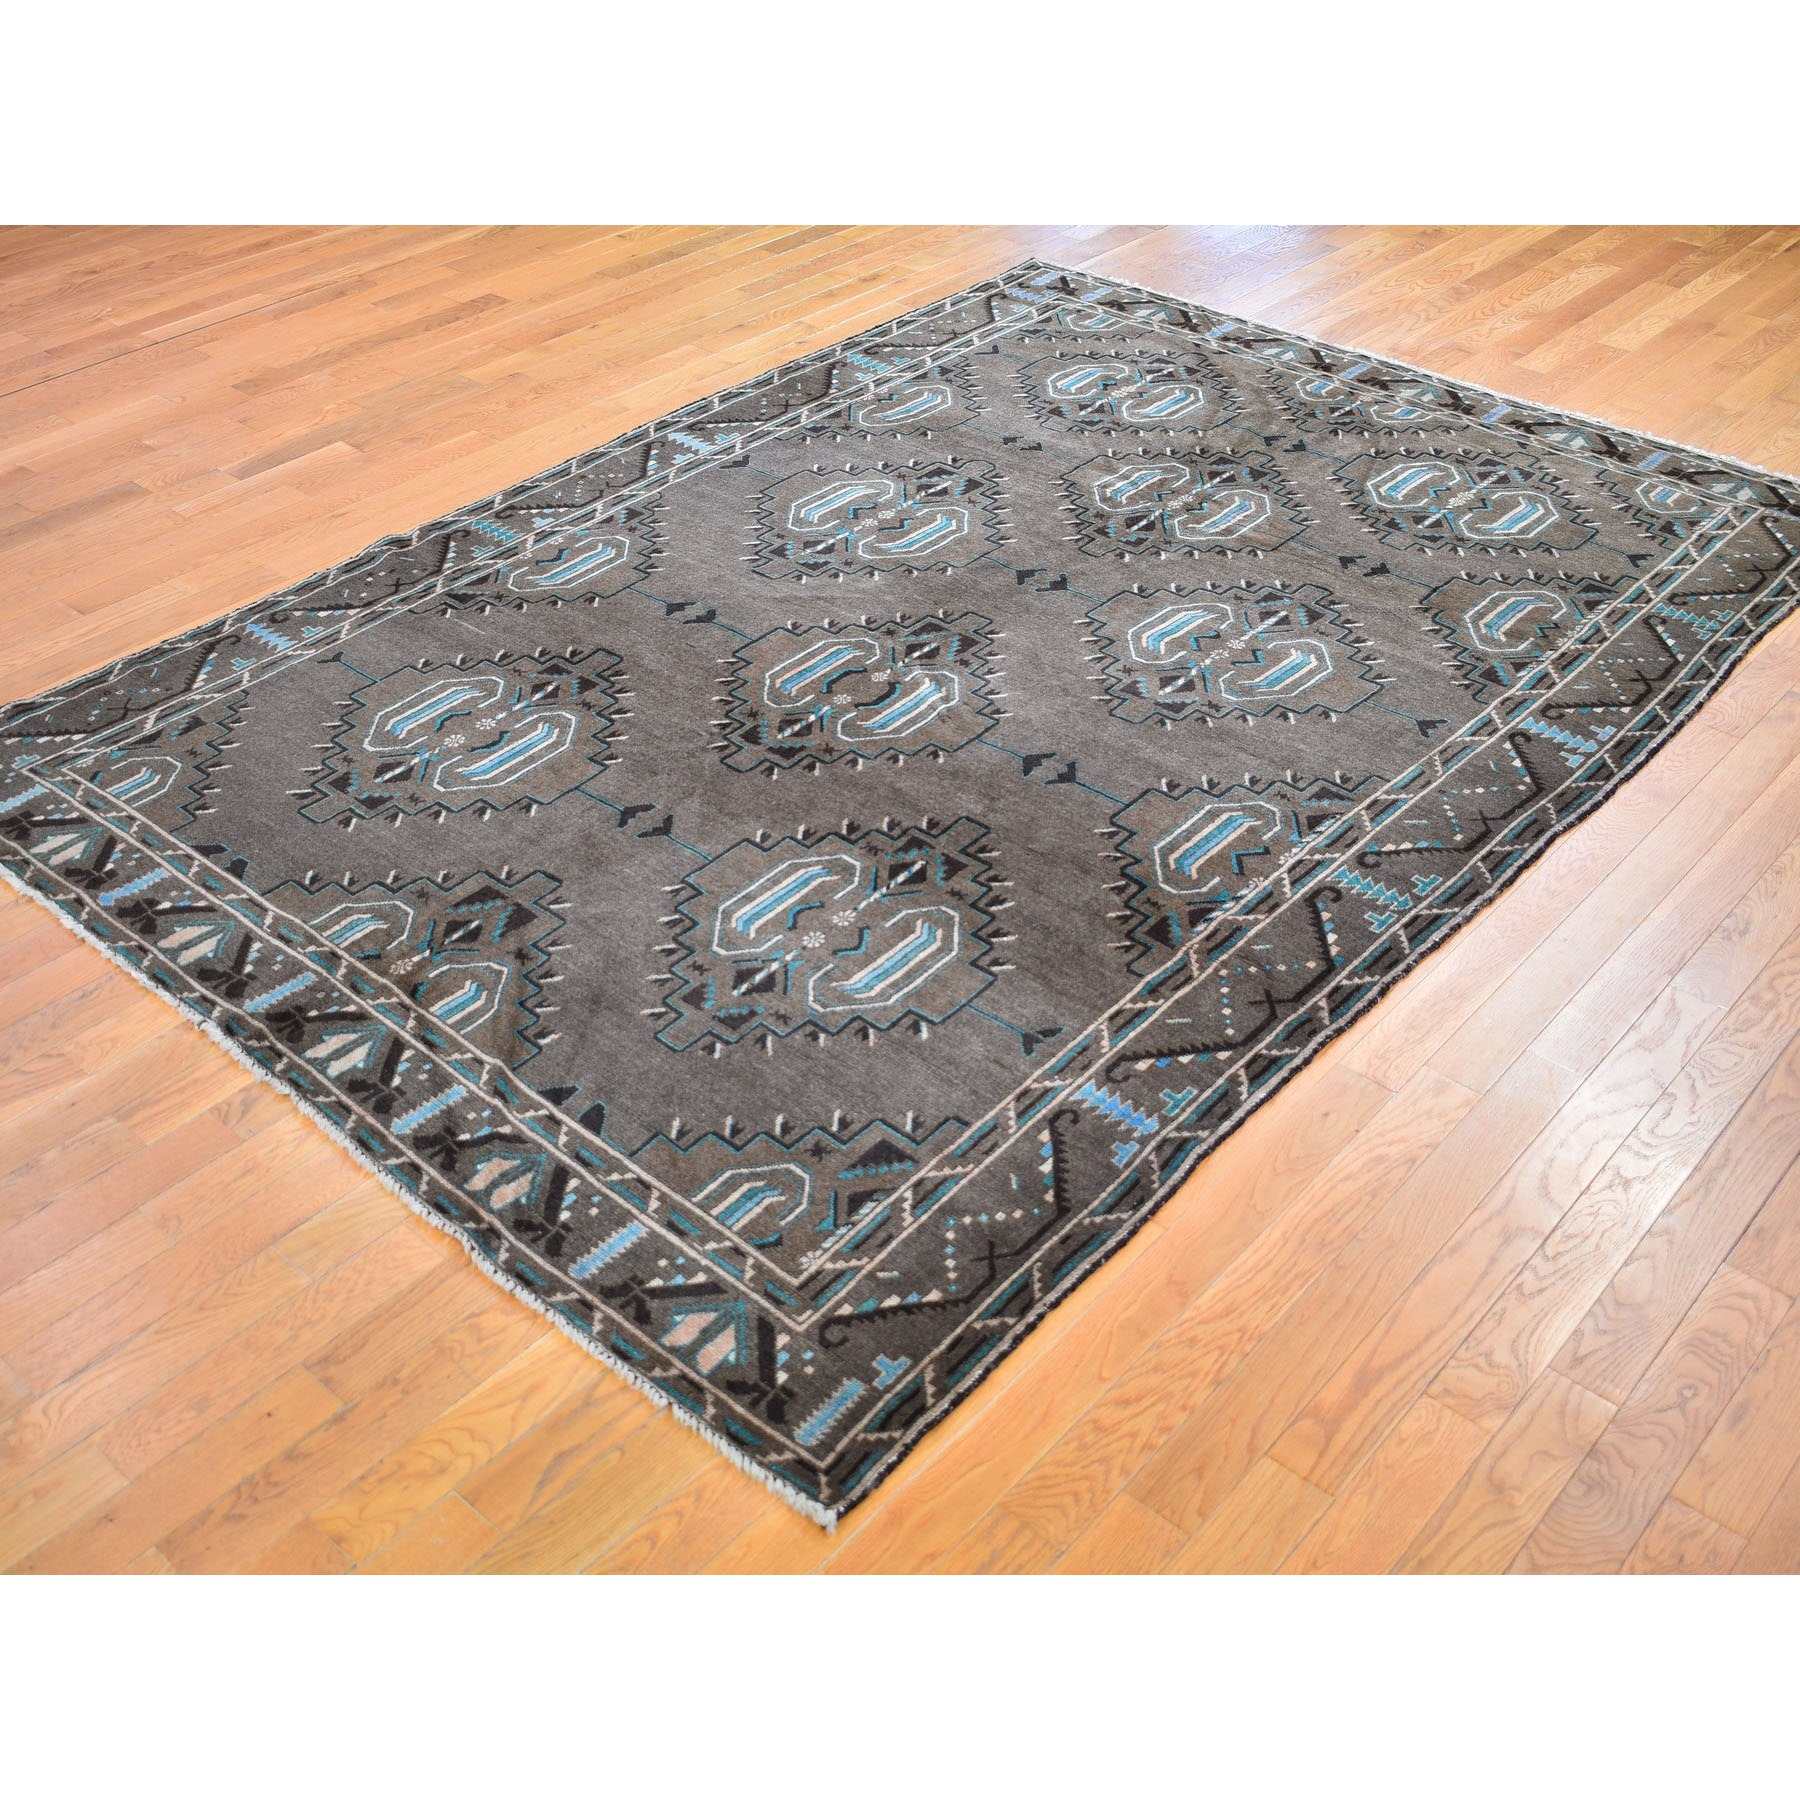 "6'8""x9'9"" Washed Out With Natural Colors Baluch Hand Knotted Pure Wool Oriental Rug"